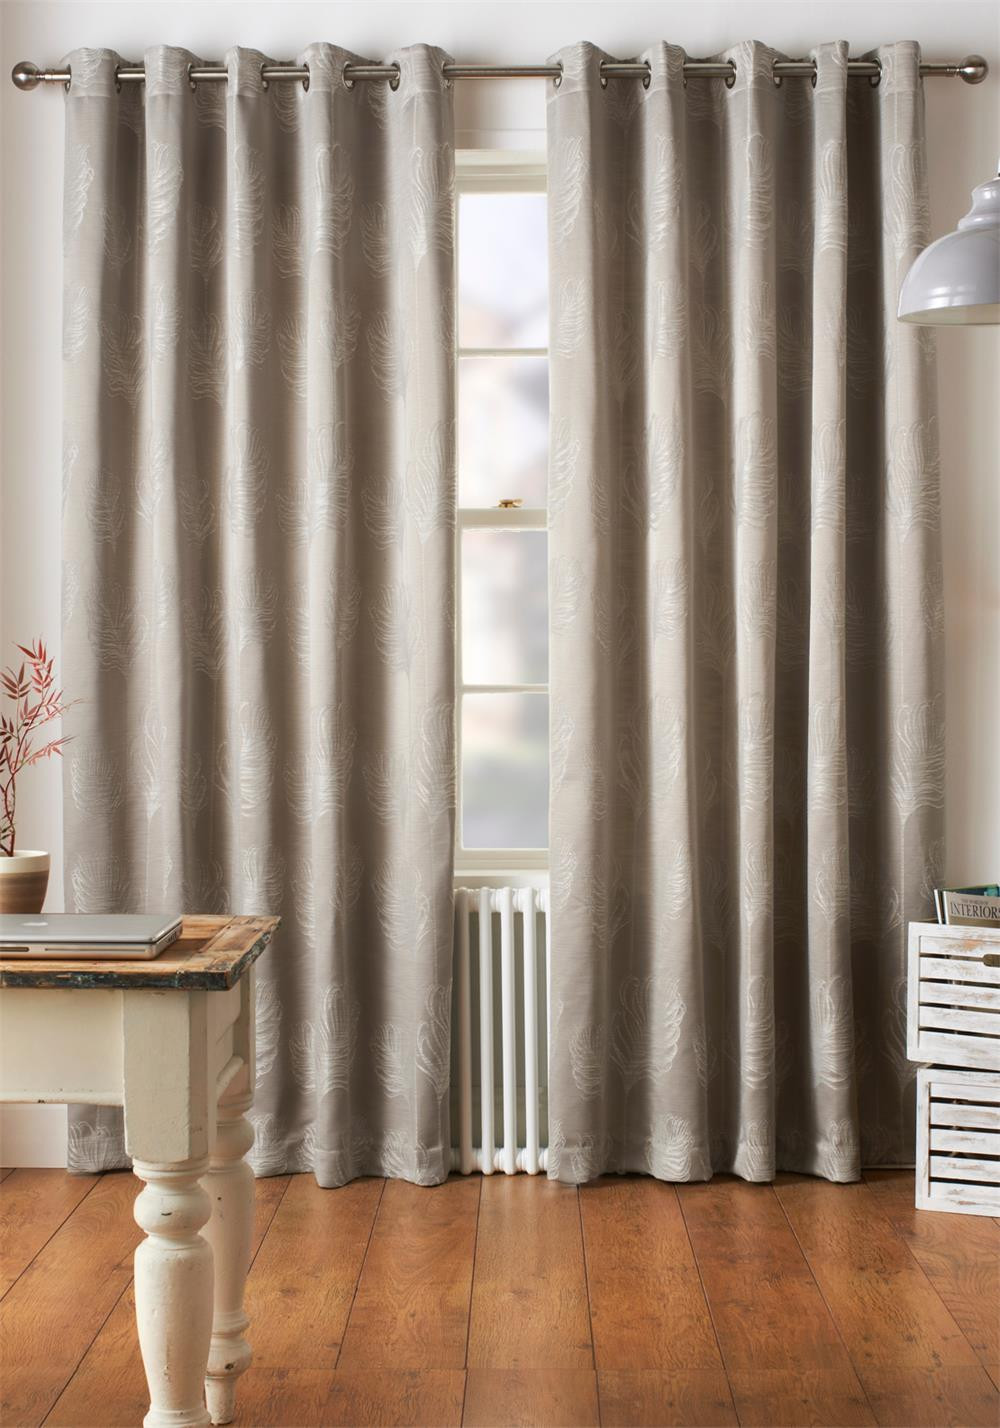 Jeff Banks Diego Fully Lined Eyelet Curtains, Silver